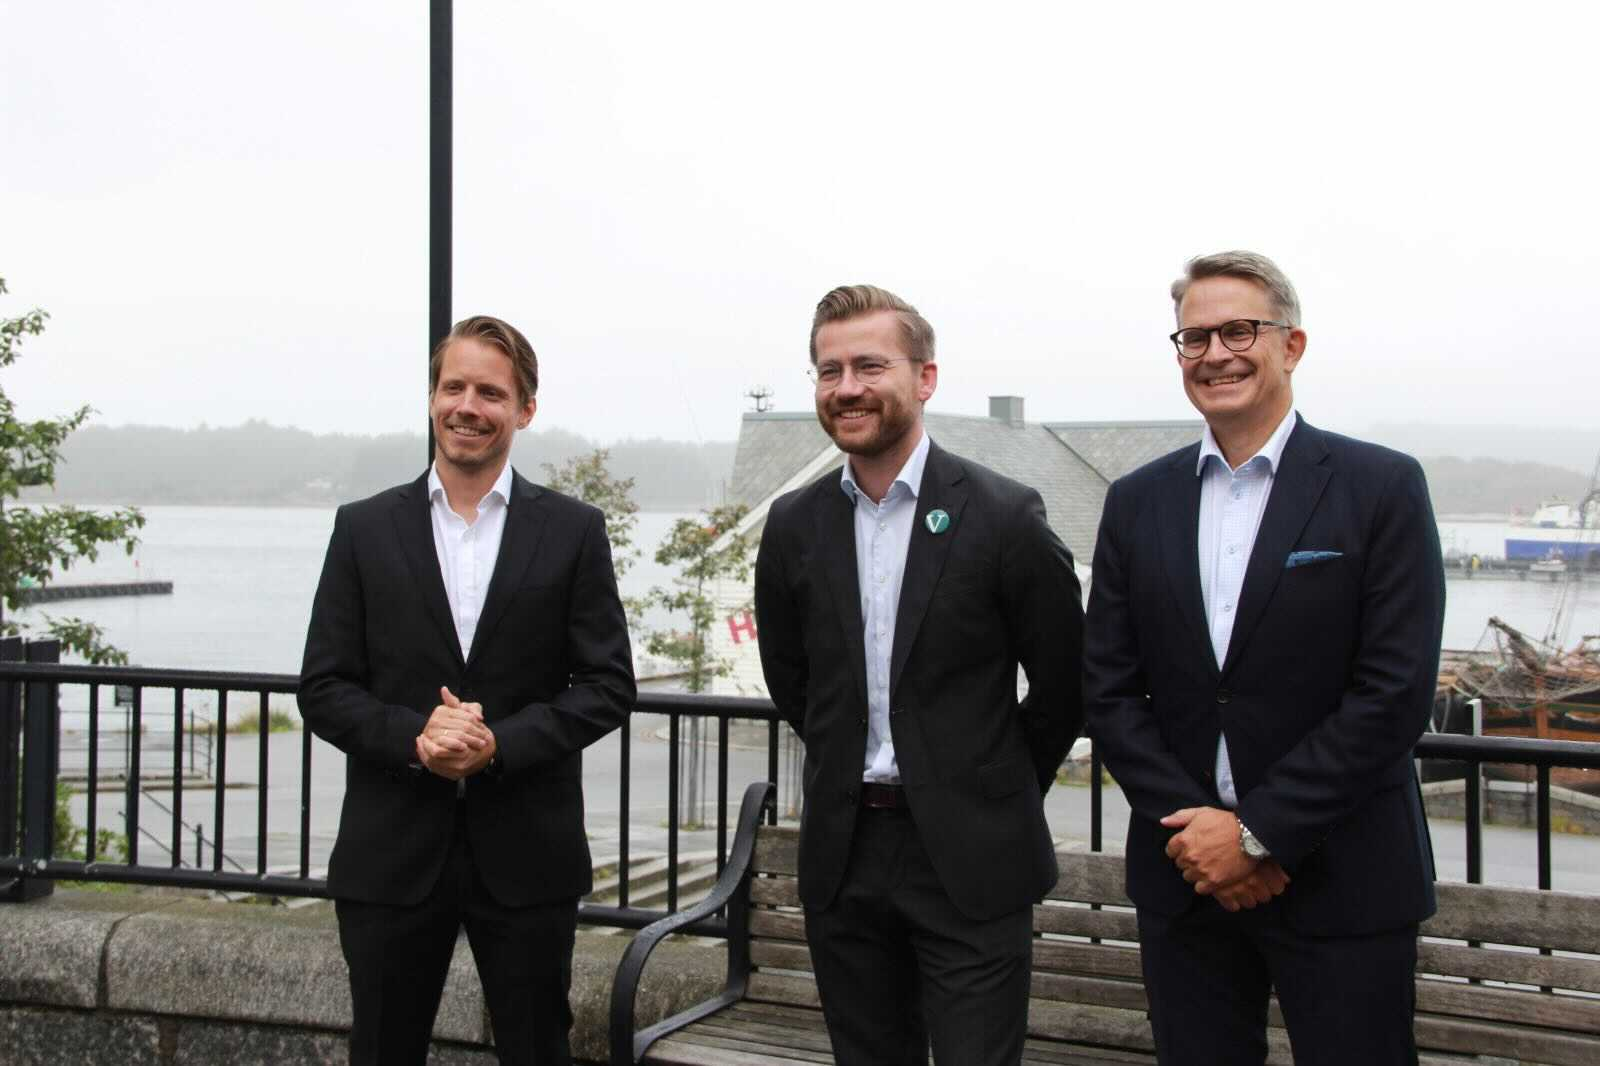 ECONNECT Energy awarded Green Platform Award from the Norwegian Government for World's first green ammonia bunkering terminal